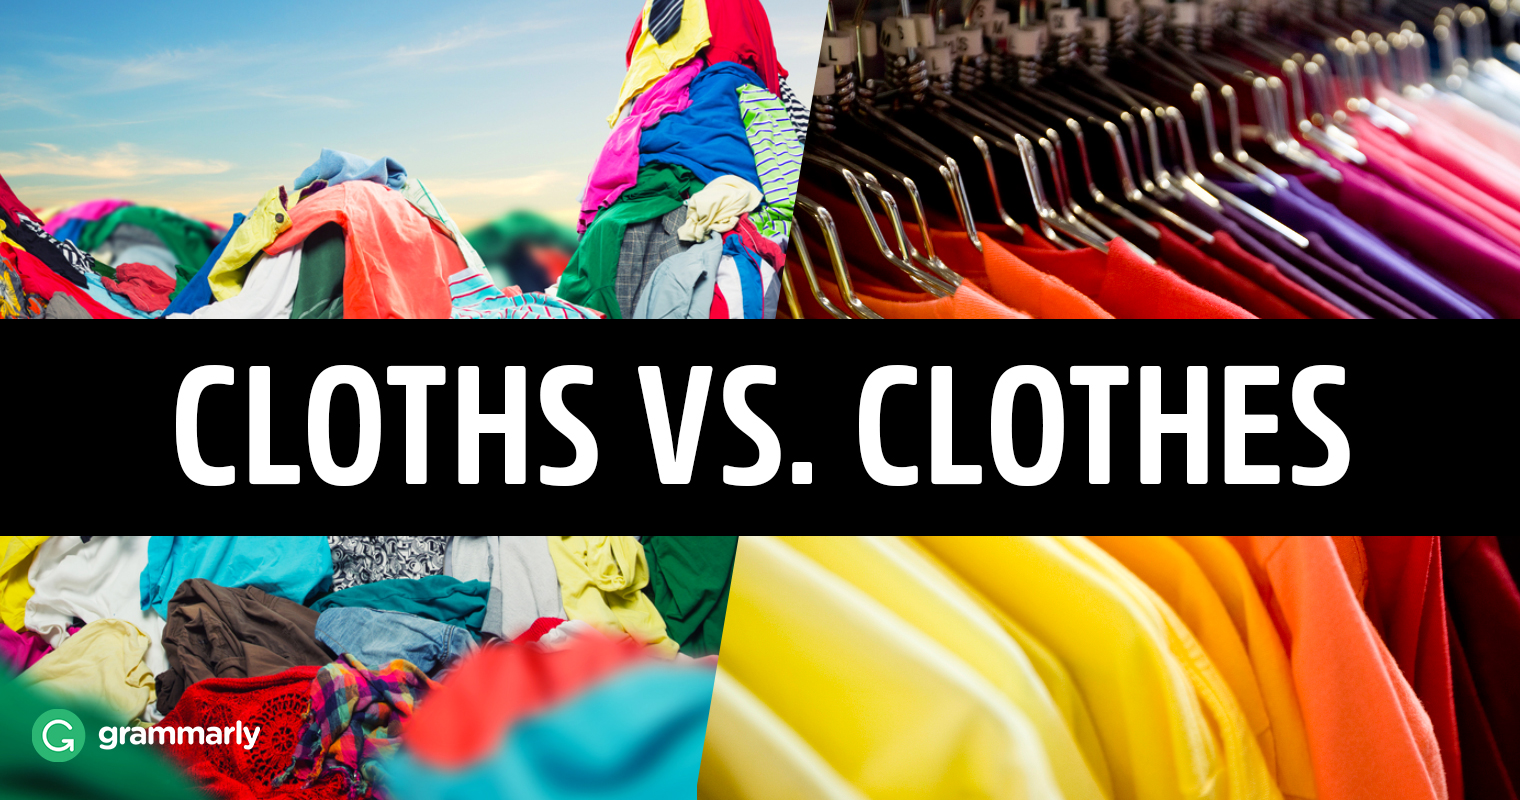 Cloths vs. Clothes—What's the Difference image